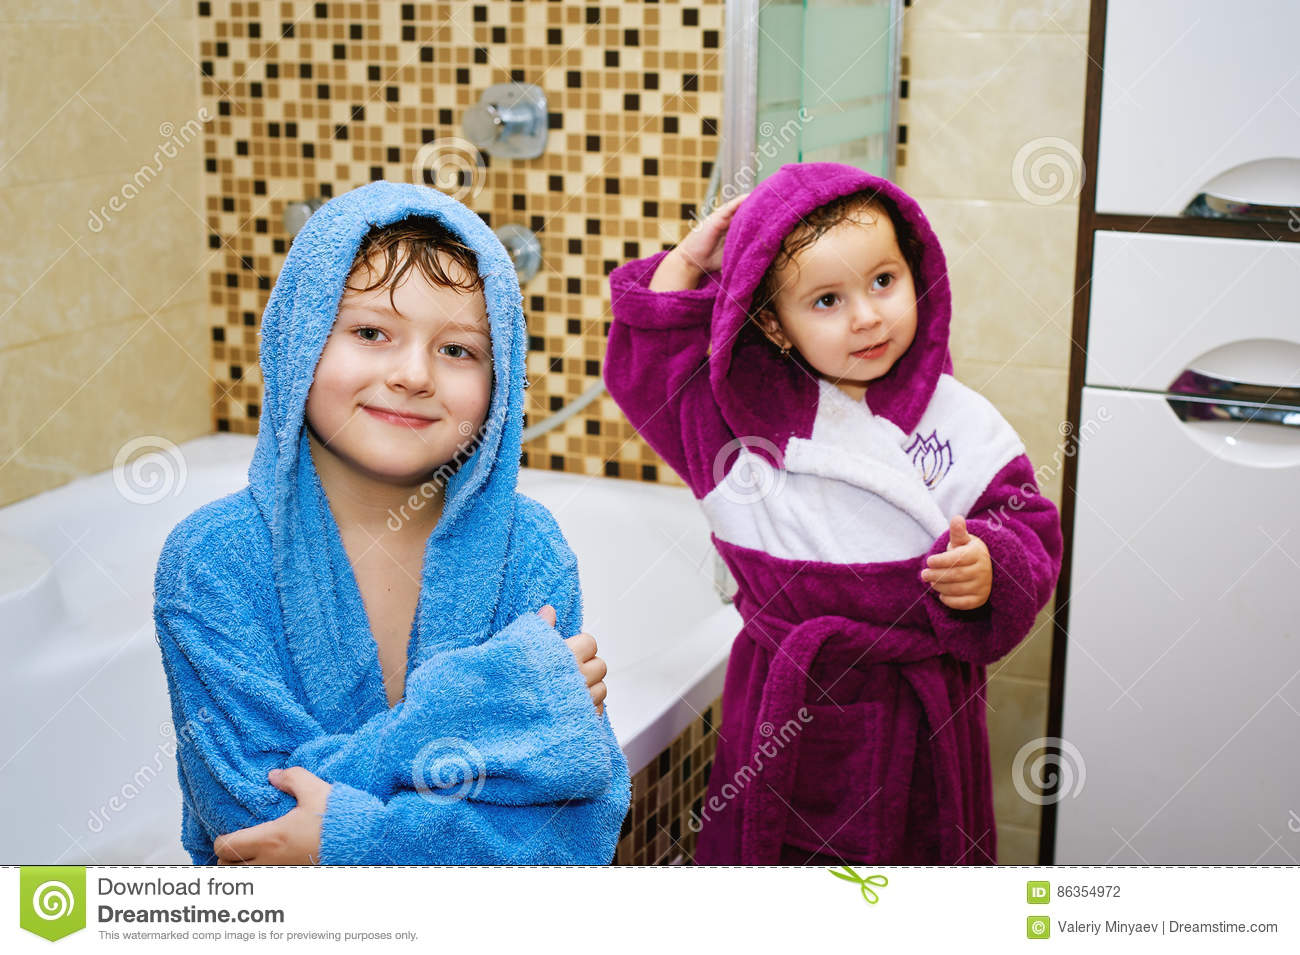 Funny Kids After Soul In The Bright Robes Stock Photo Image Of